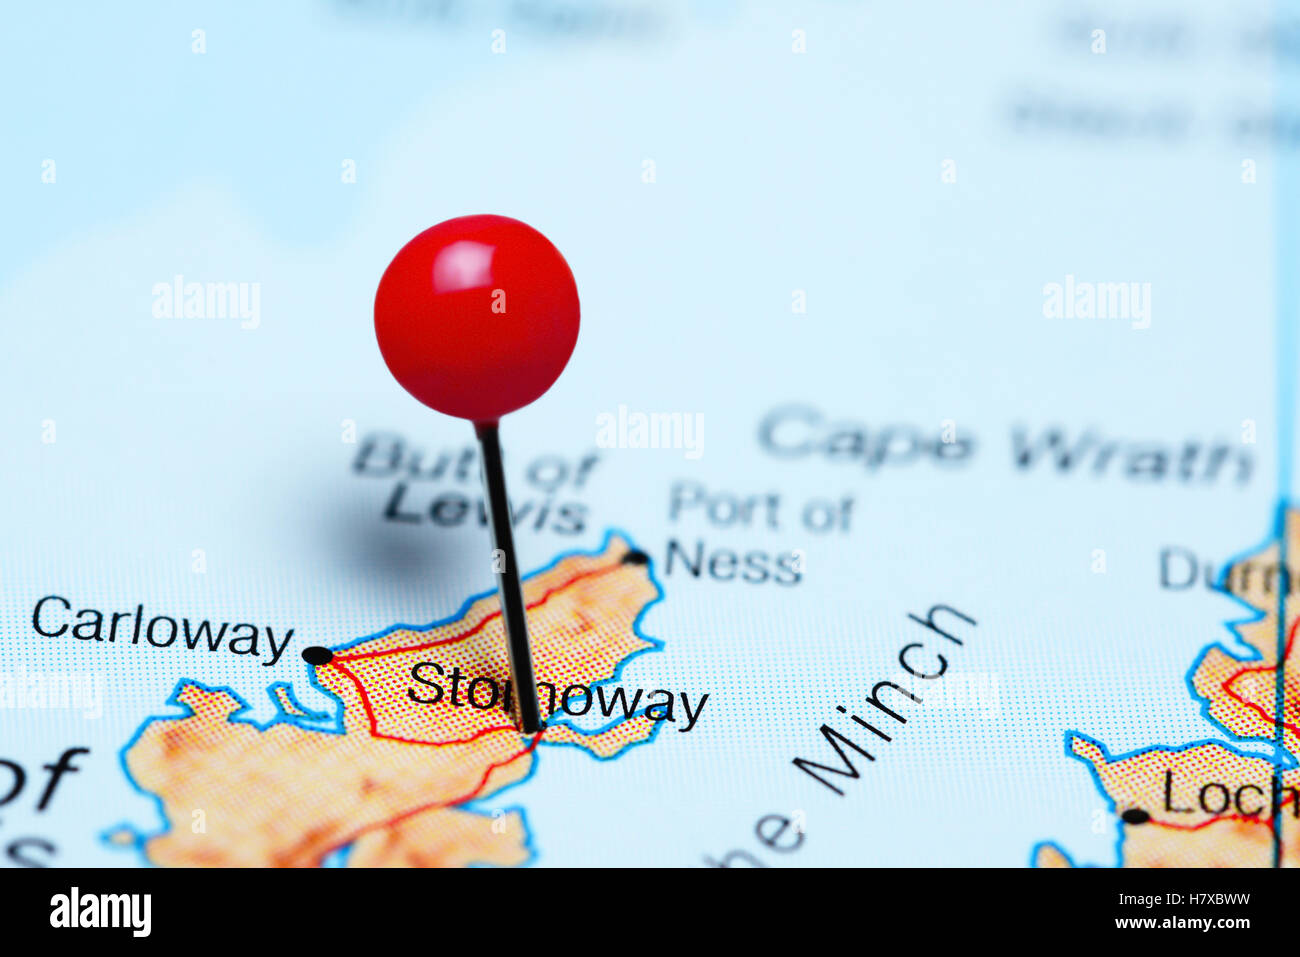 Stornoway pinned on a map of Scotland - Stock Image